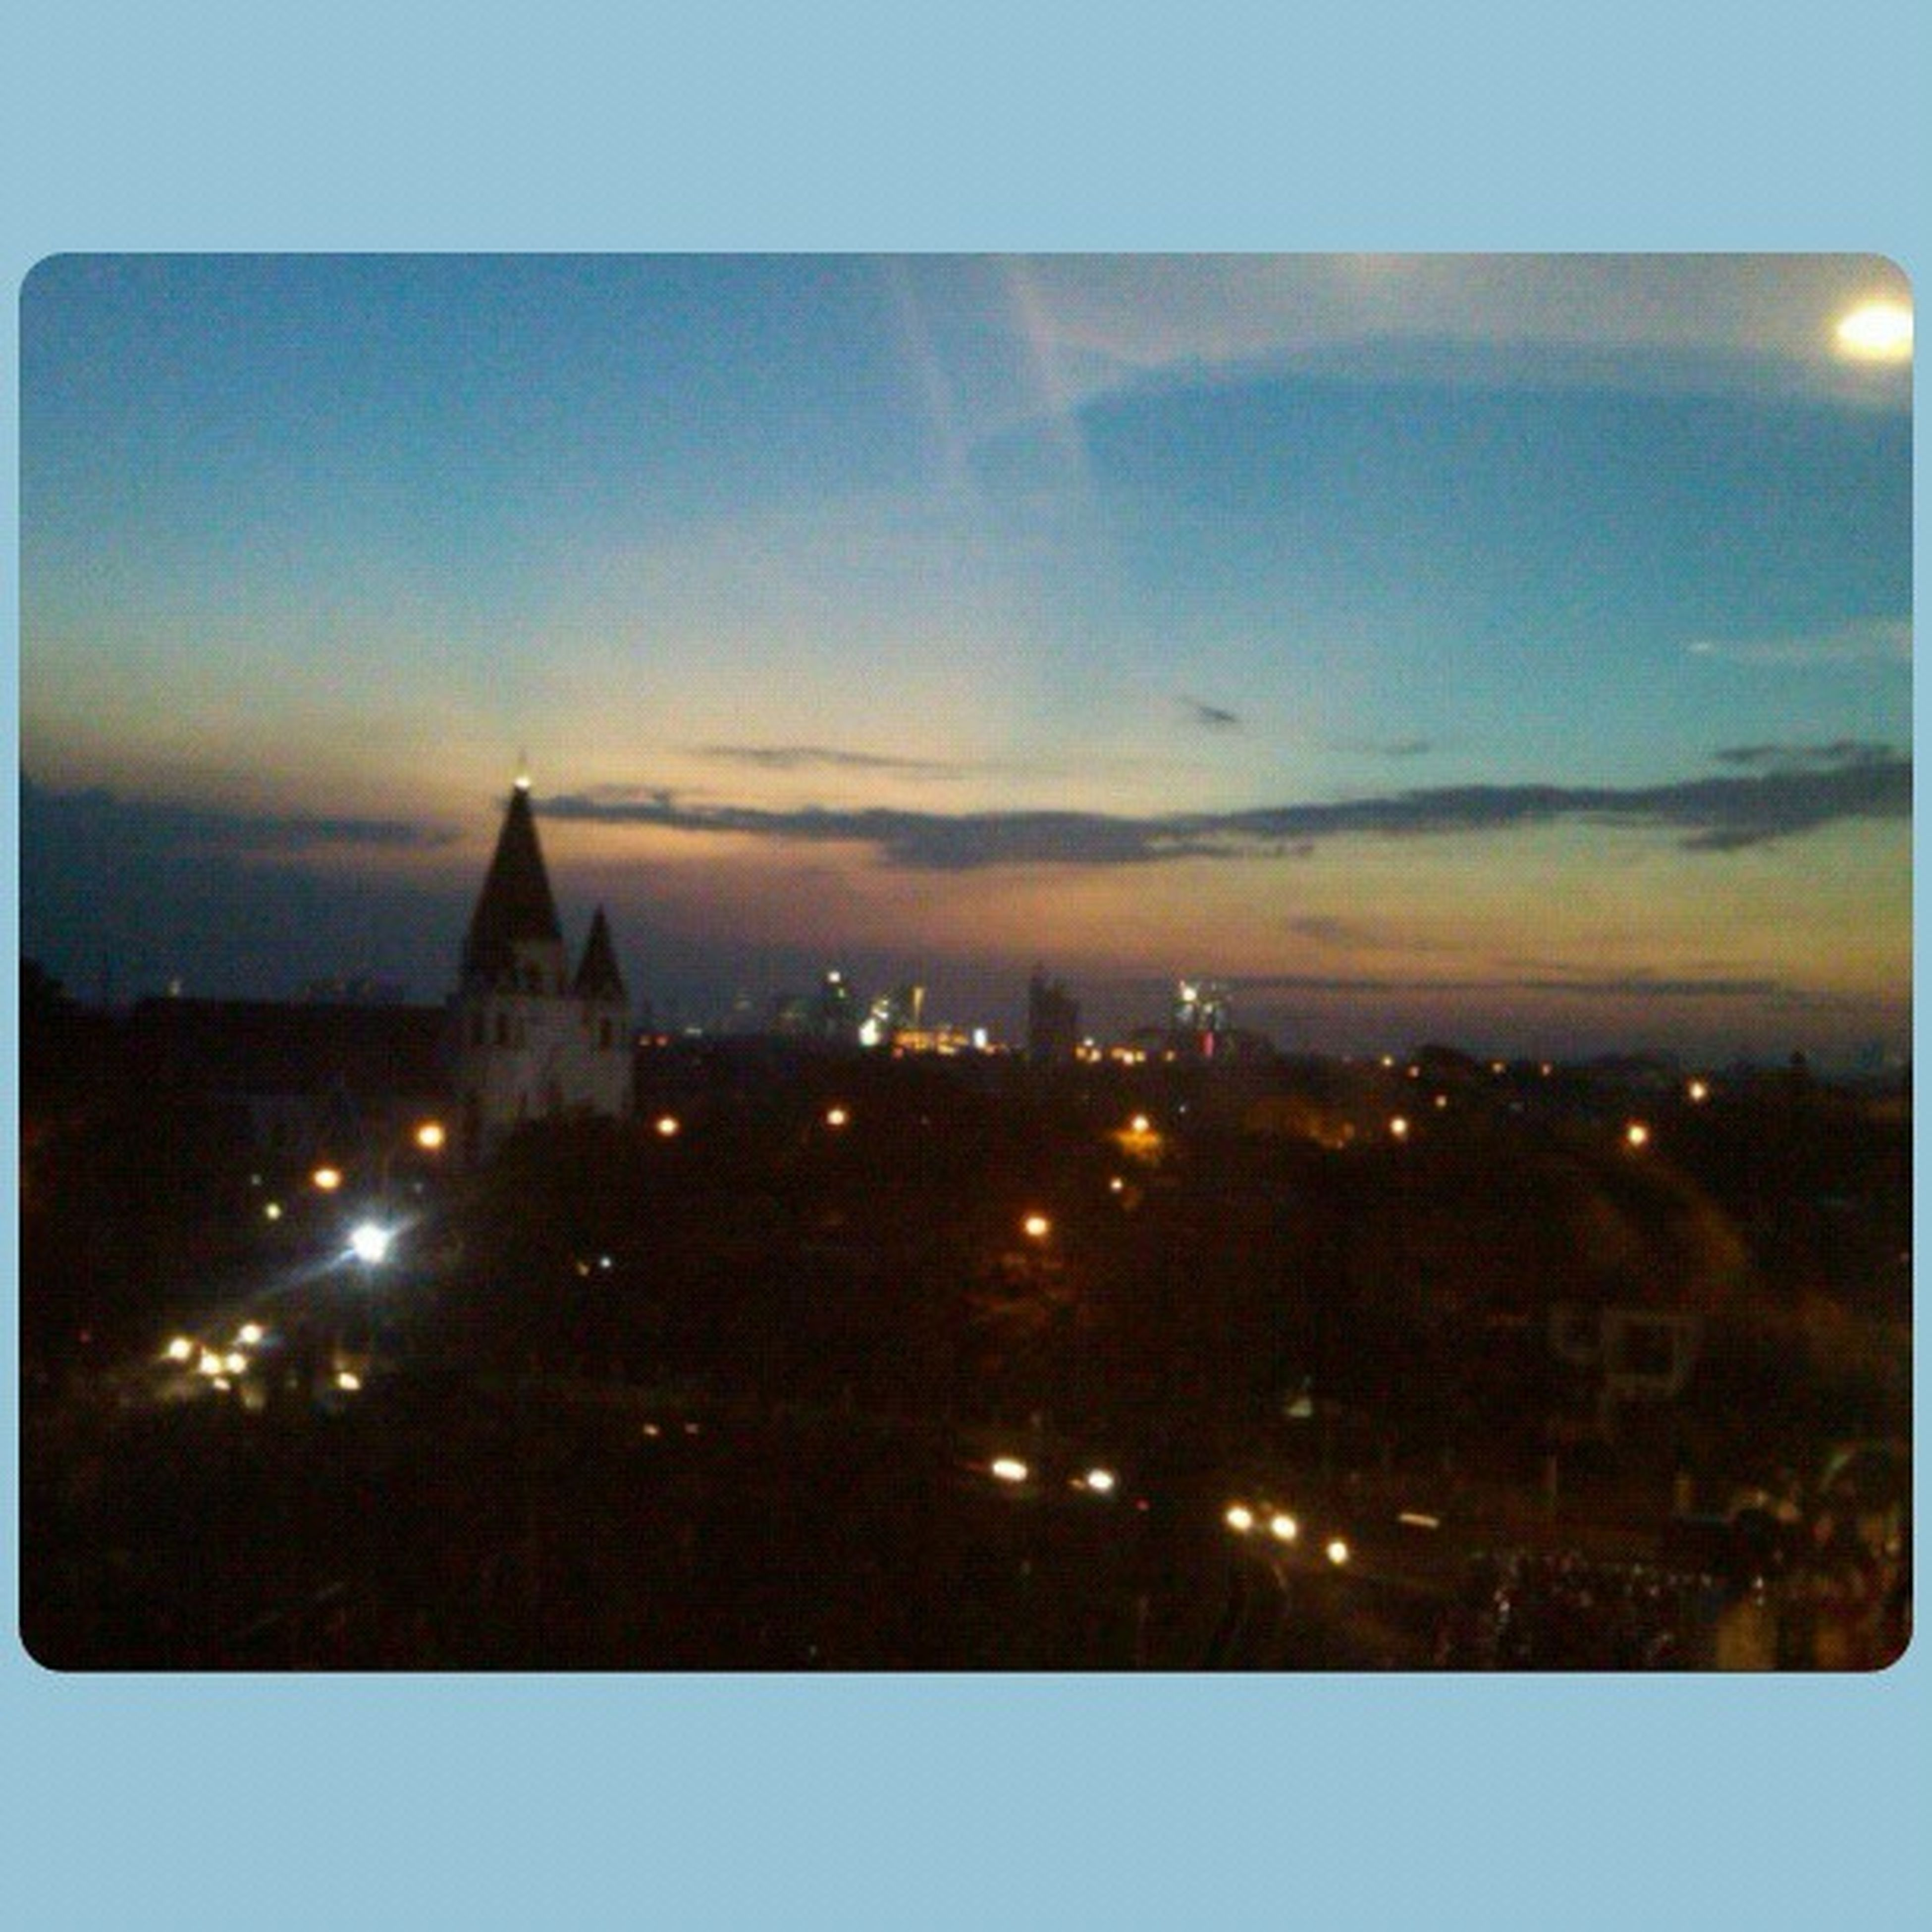 Catching sunset, taken at 3rd floor 18:18 on july 26 Sunset Jakarta Cijantung View venue